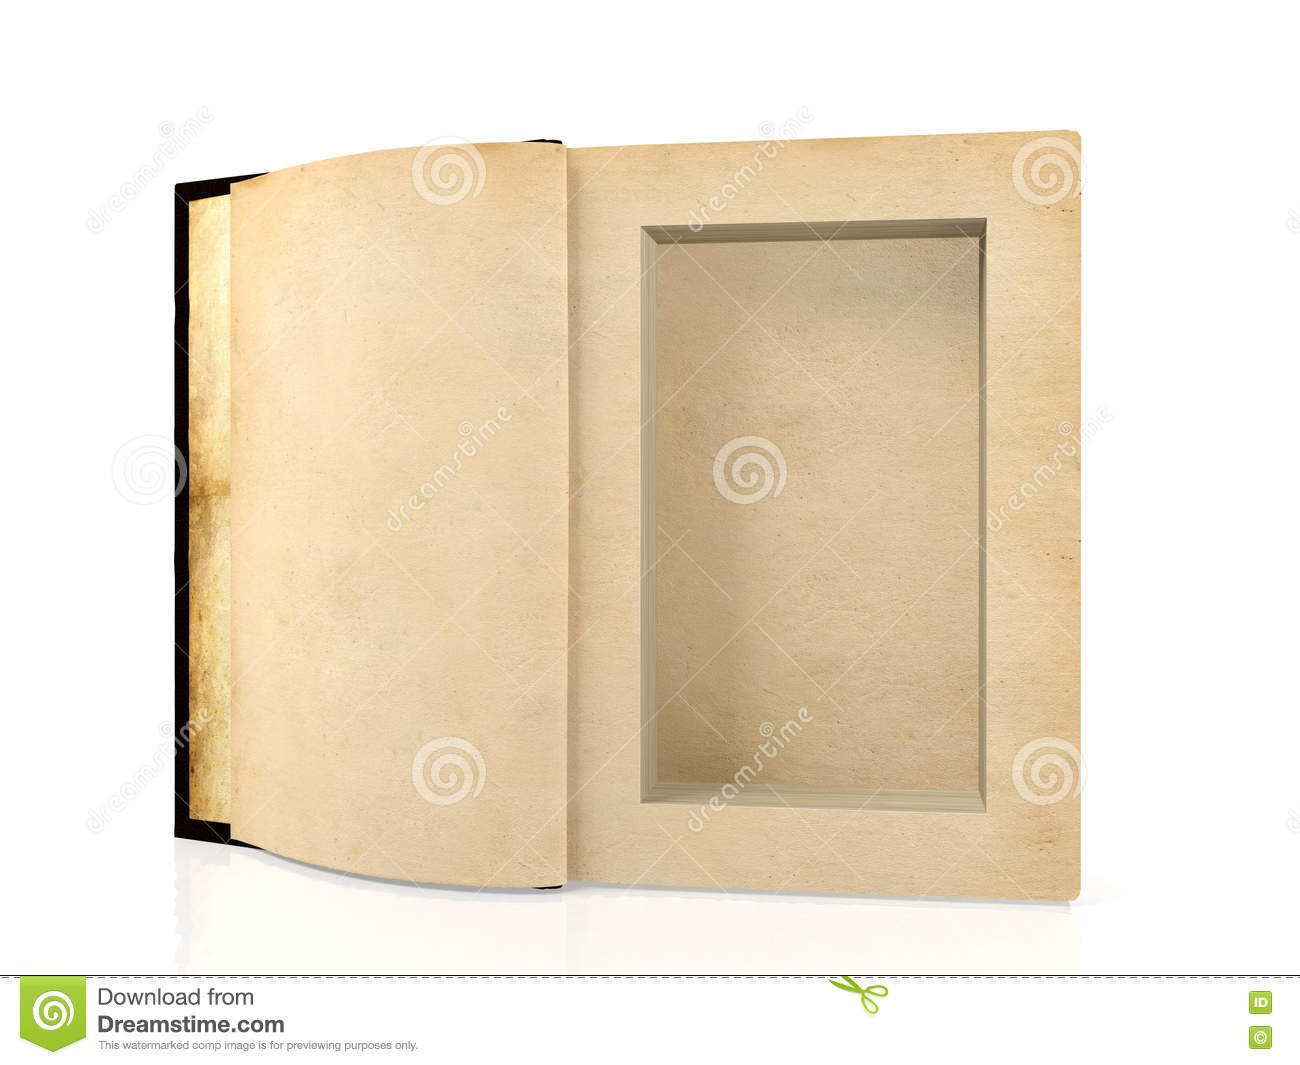 Opened ancient paper book with a hole in a middle for hiding something inside